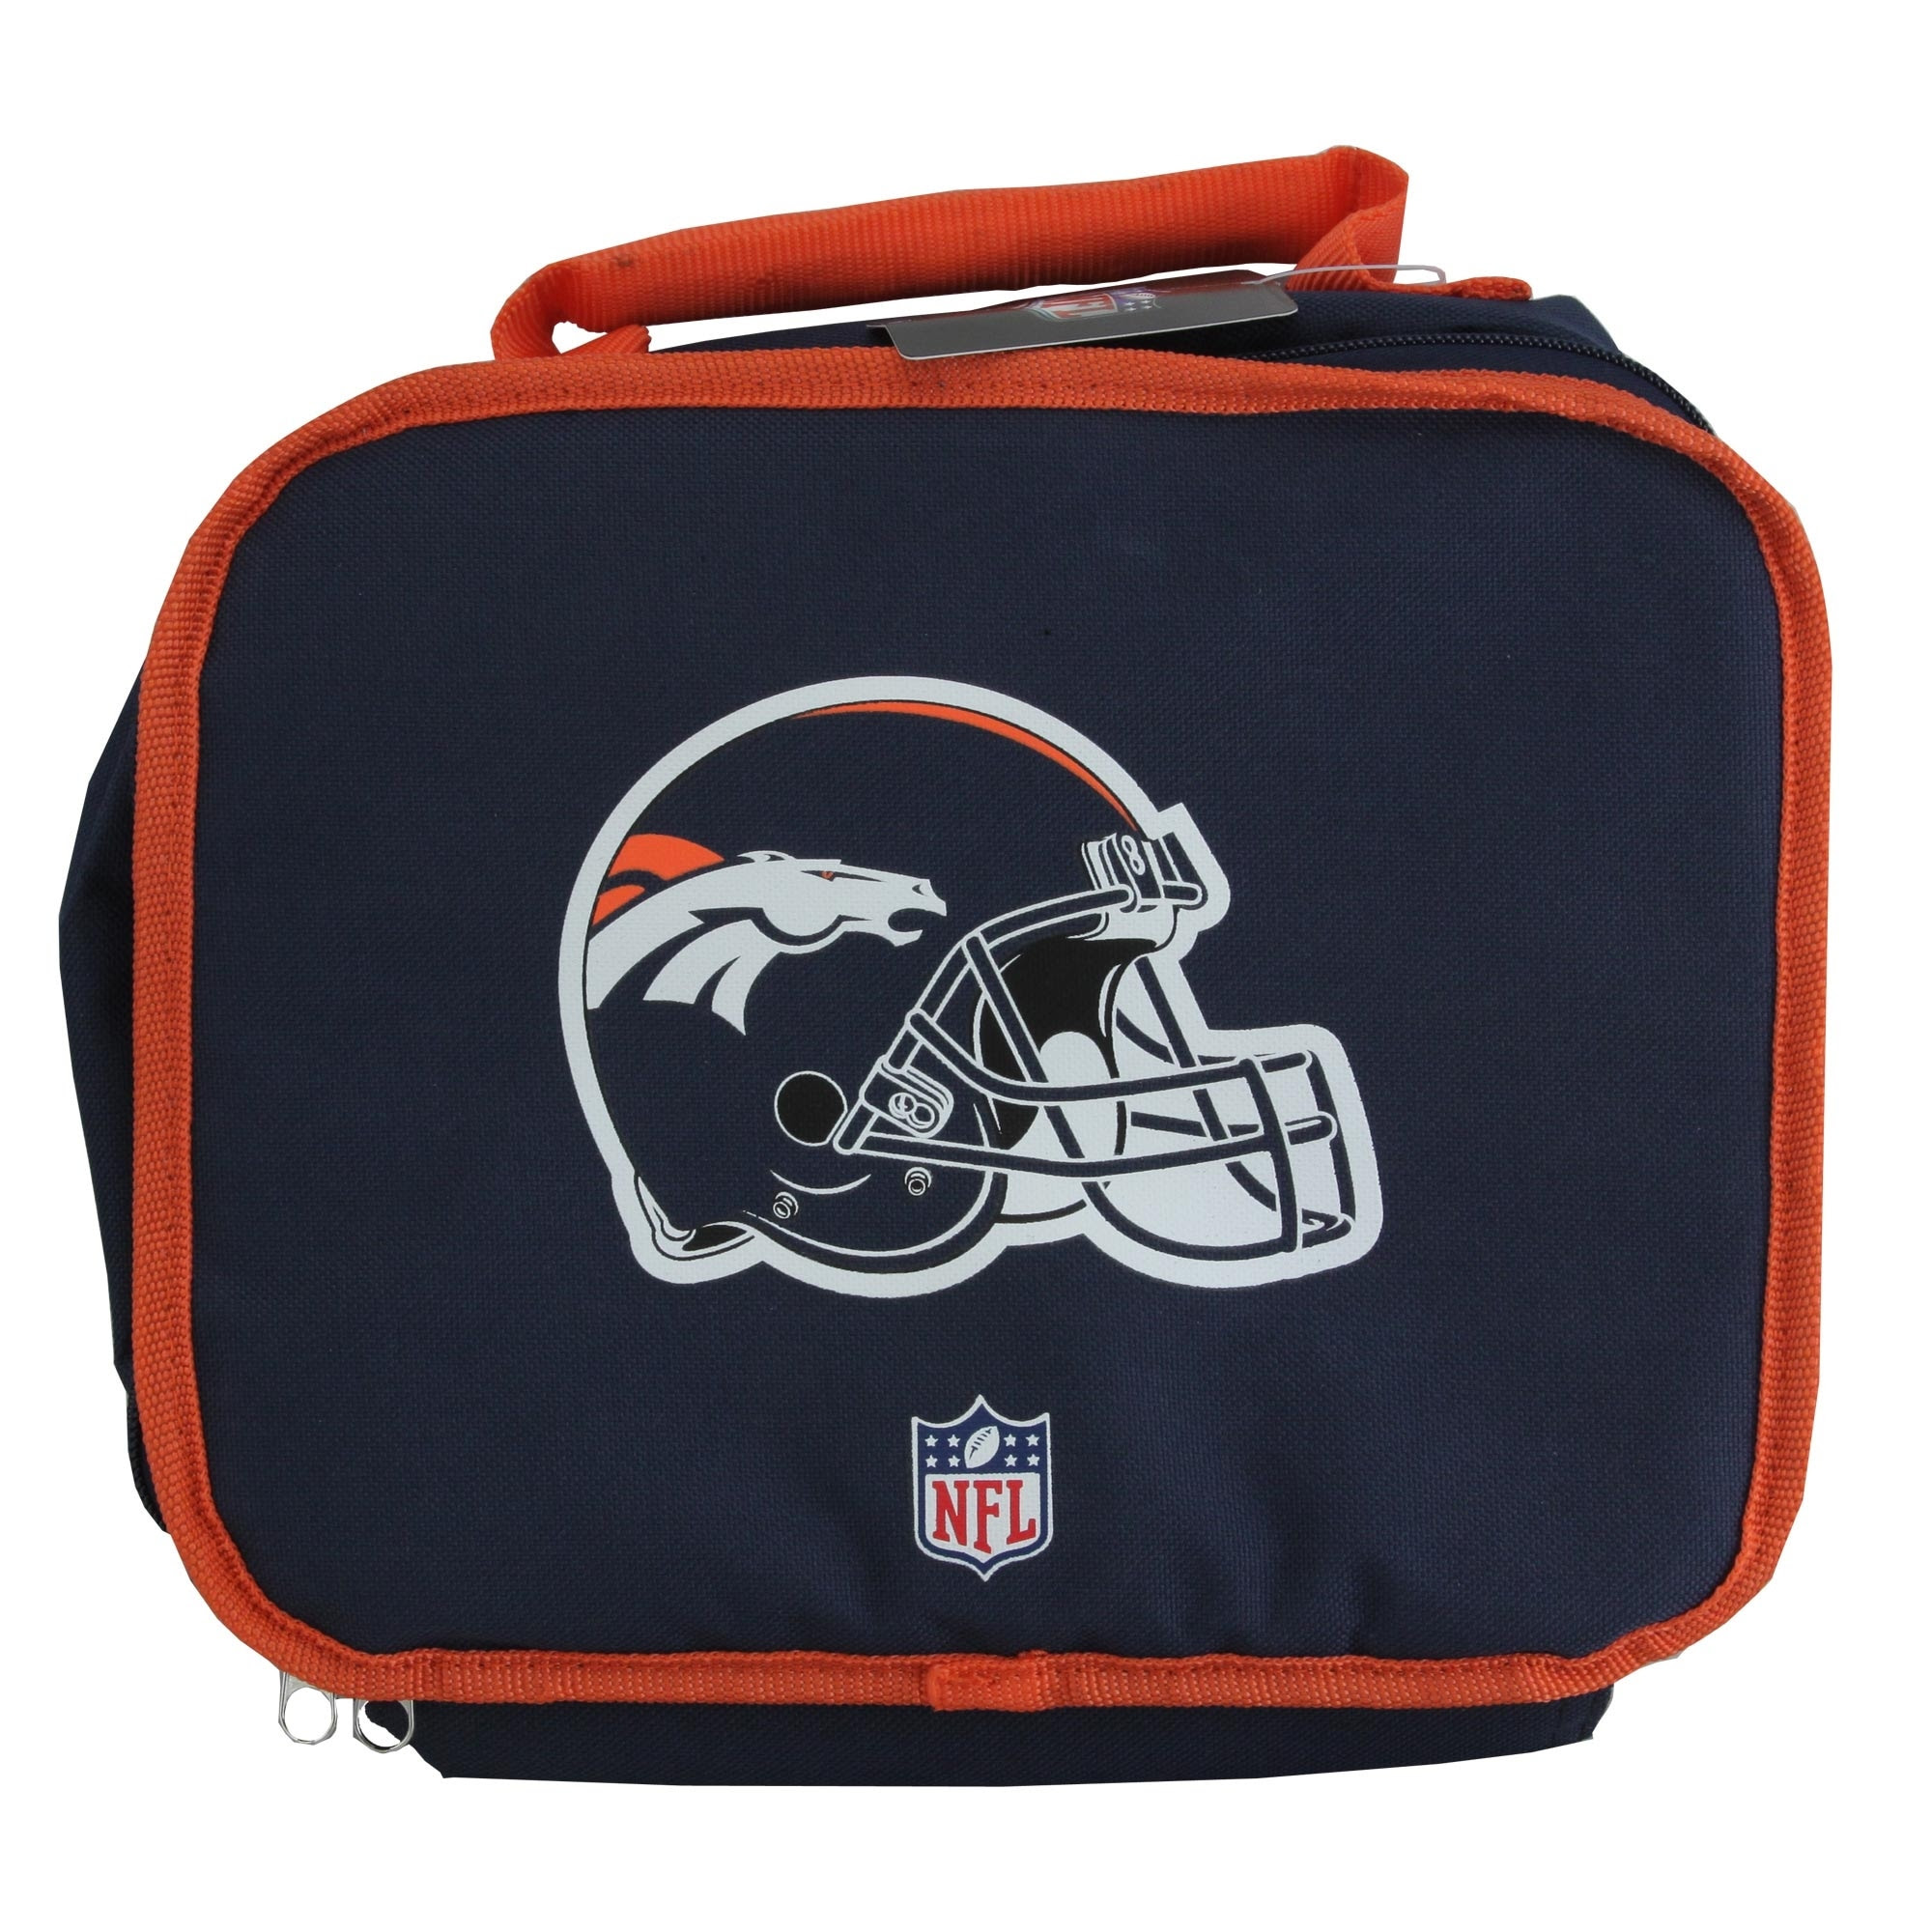 NFL LUNCH BOXES AND MORE  COOL BABY AND KIDS STUFF